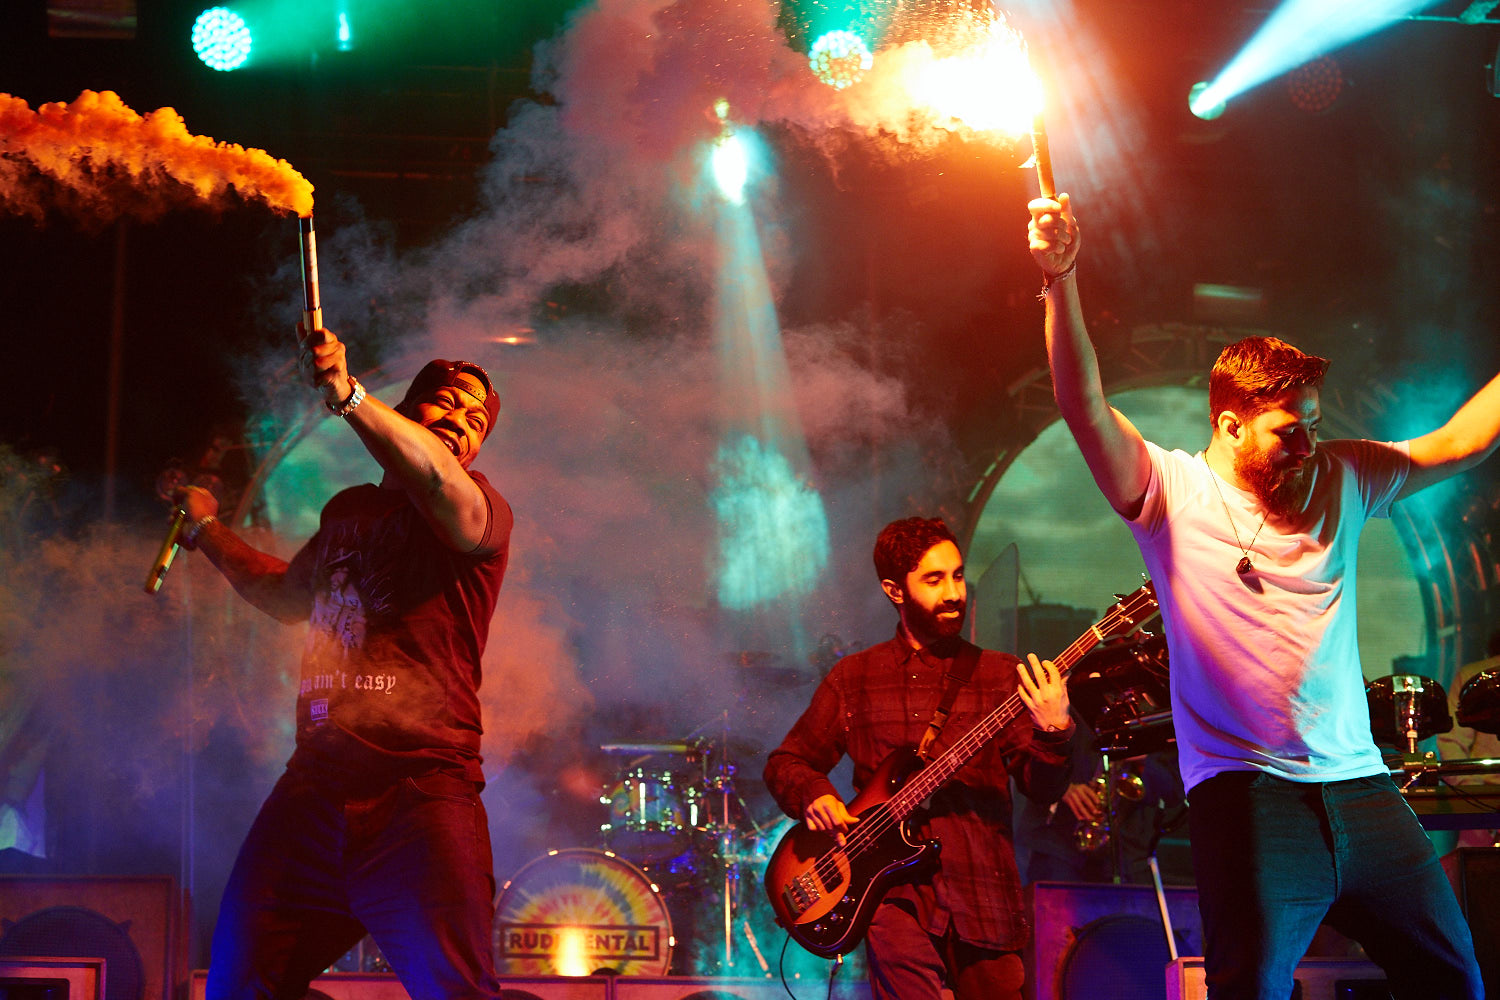 Rudimental headline the second day of Boardmasters music festival, Watergate Bay, Cornwall 2015 performing on the second day of Boardmasters music festival, Watergate Bay, Cornwall 2015